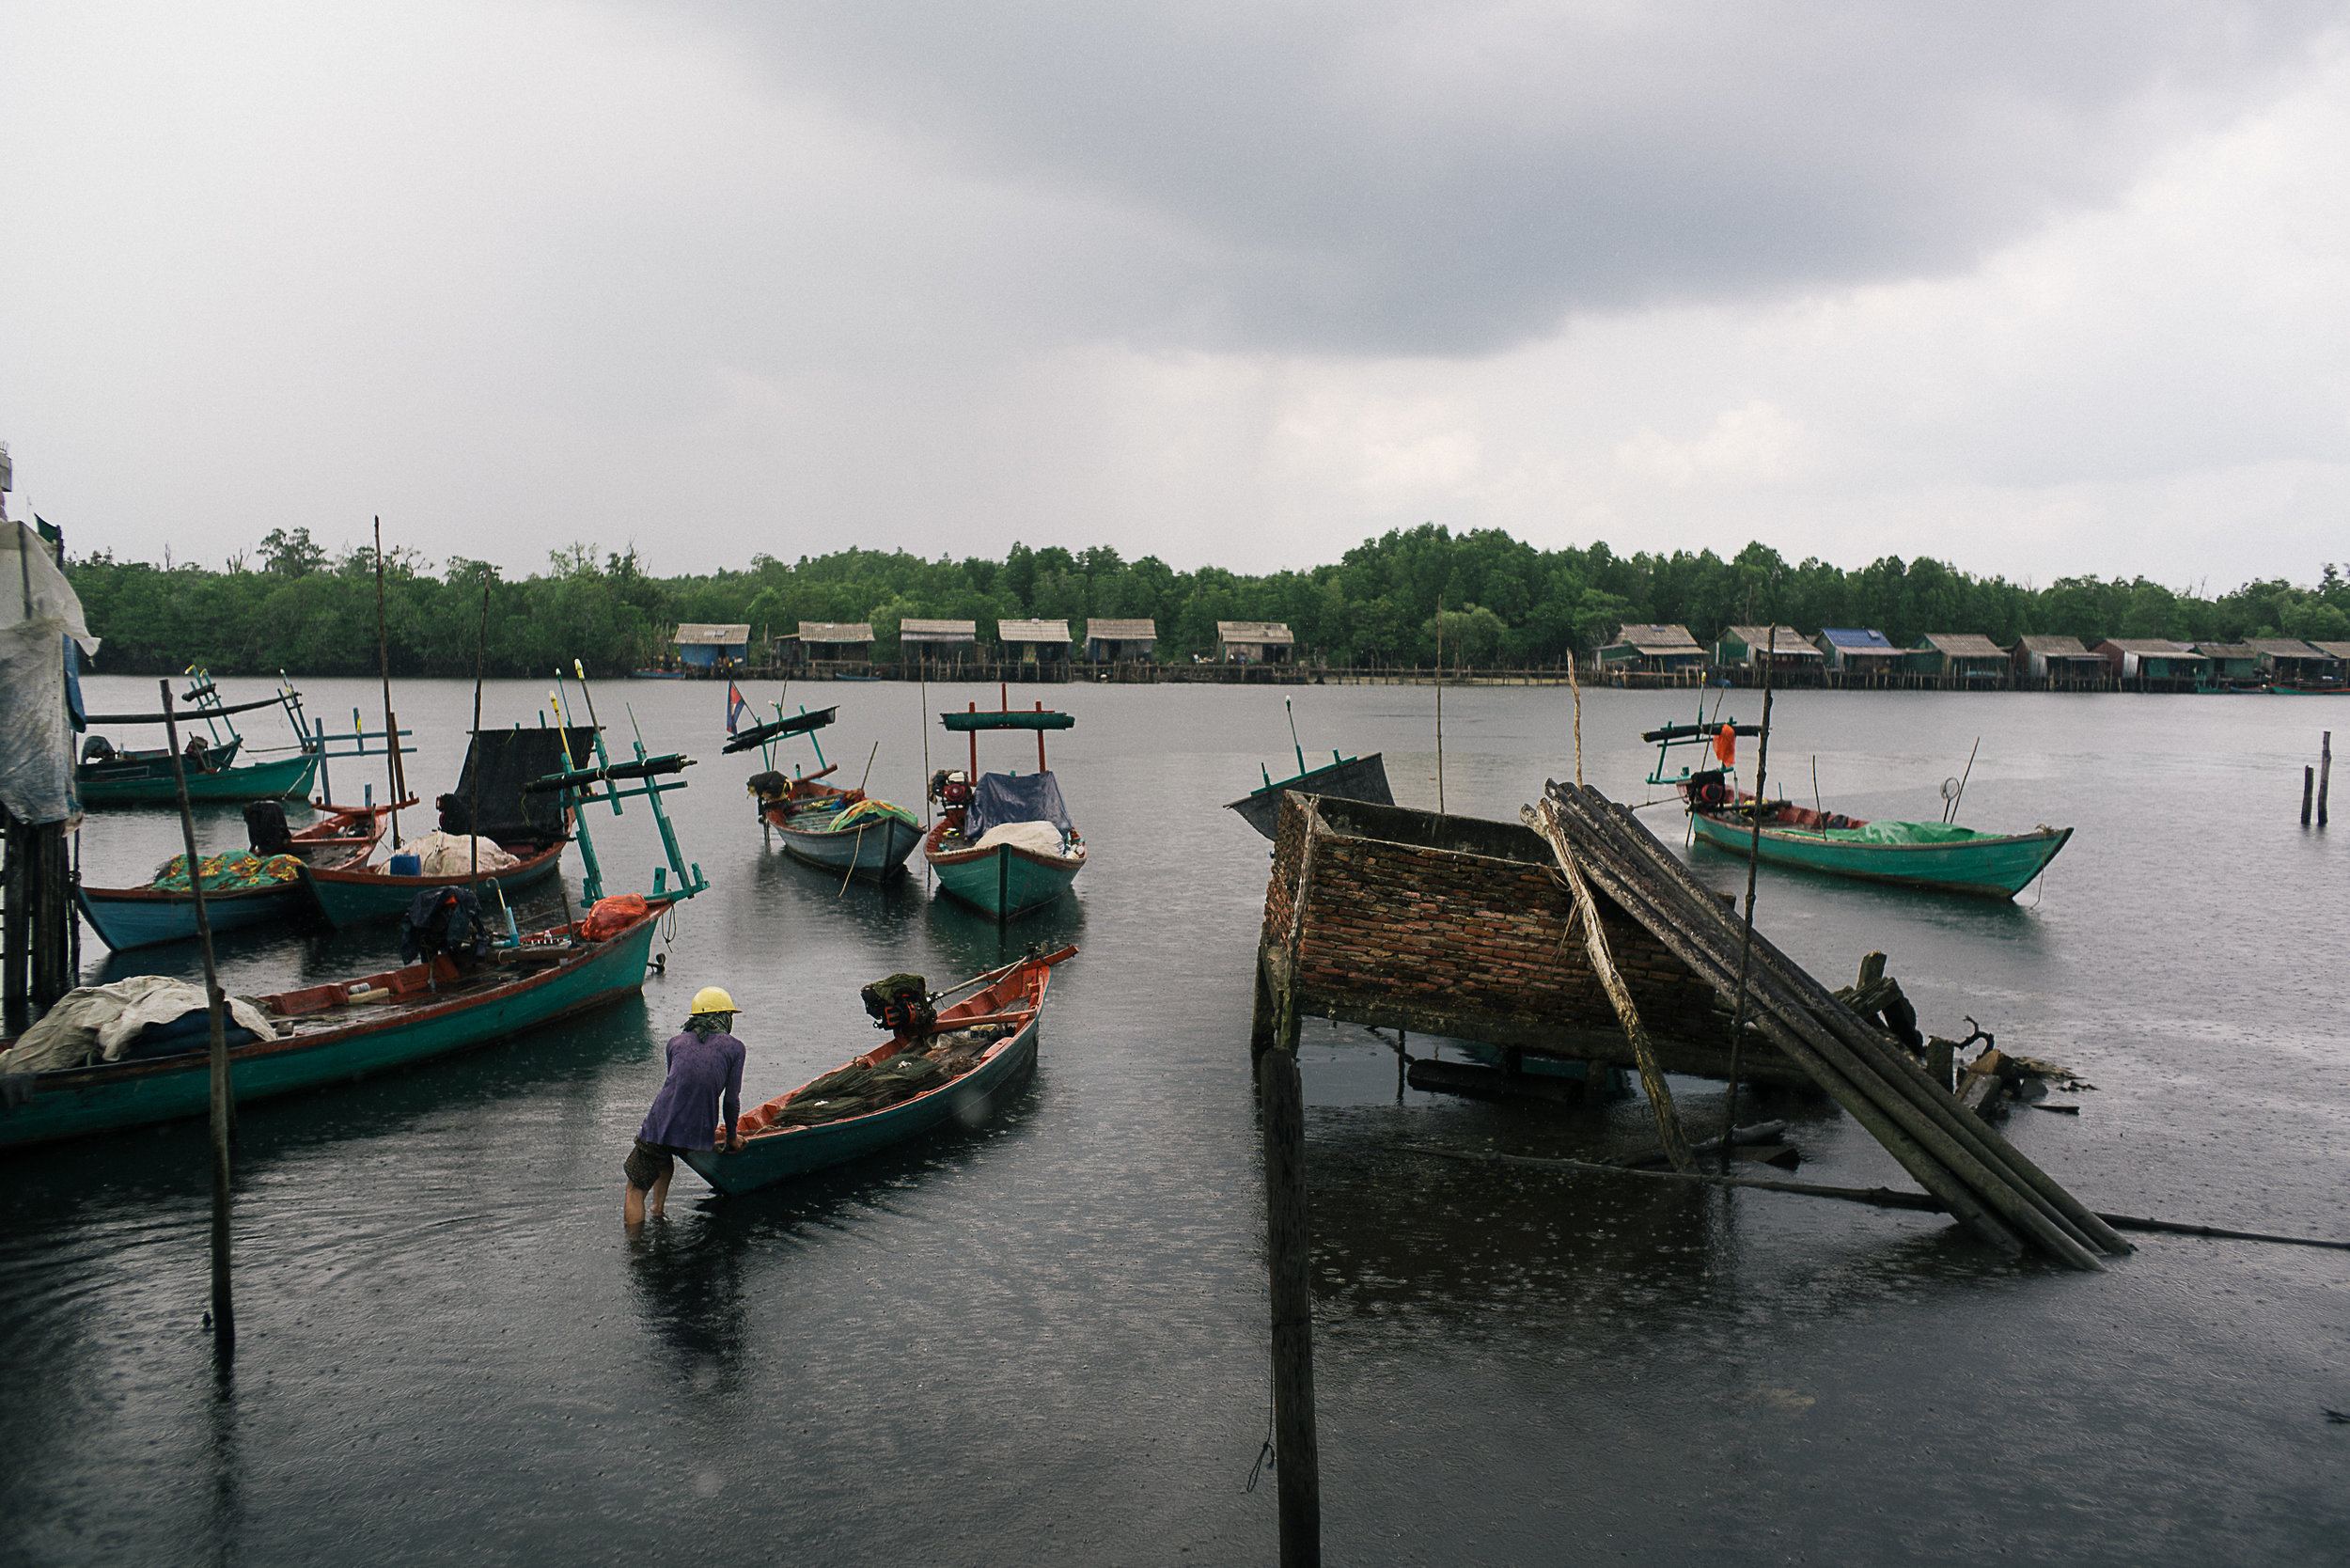 With a number of great fishing spots in the mangroves disappearing due to rising land erosion, local fishermen had no choice but to crowd in on the few remaining spots. This trend is contributing to an issue of overfishing in the area.